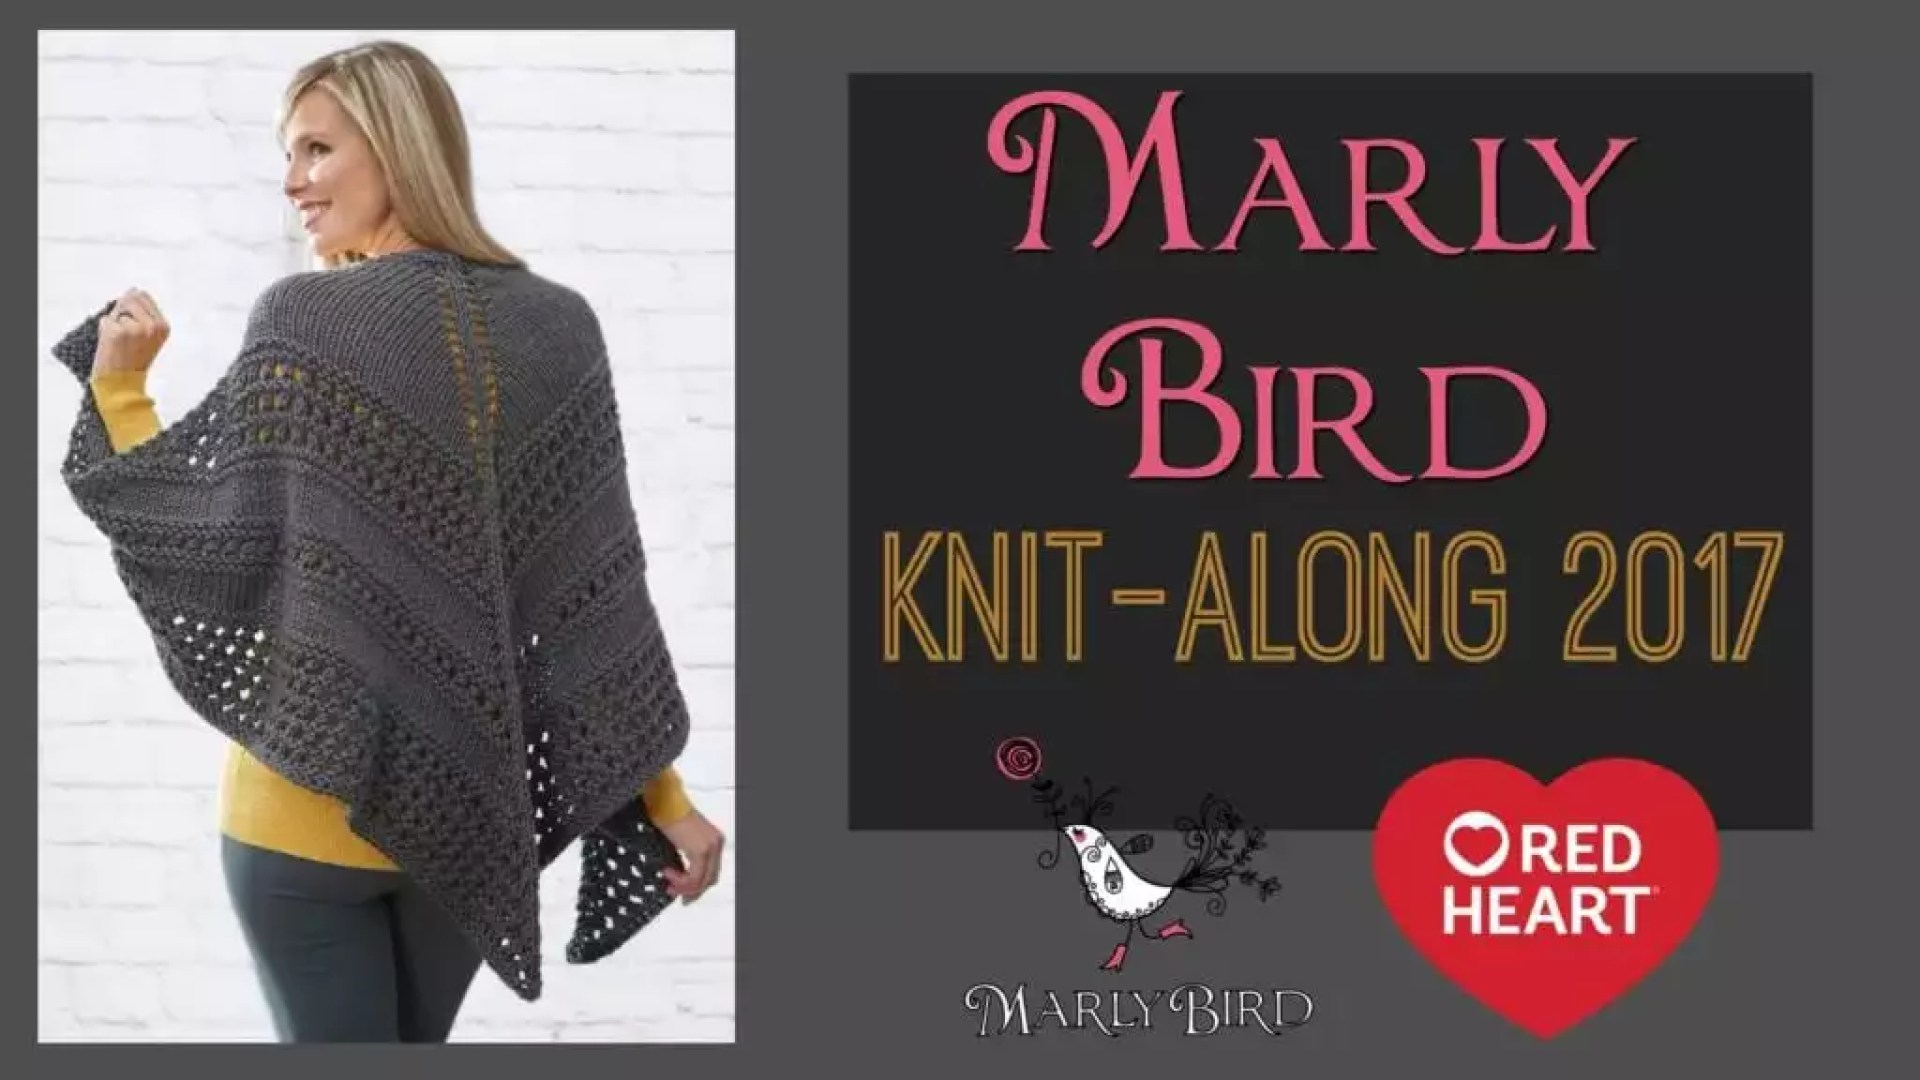 Knit Along with Marly Bird and Red Heart